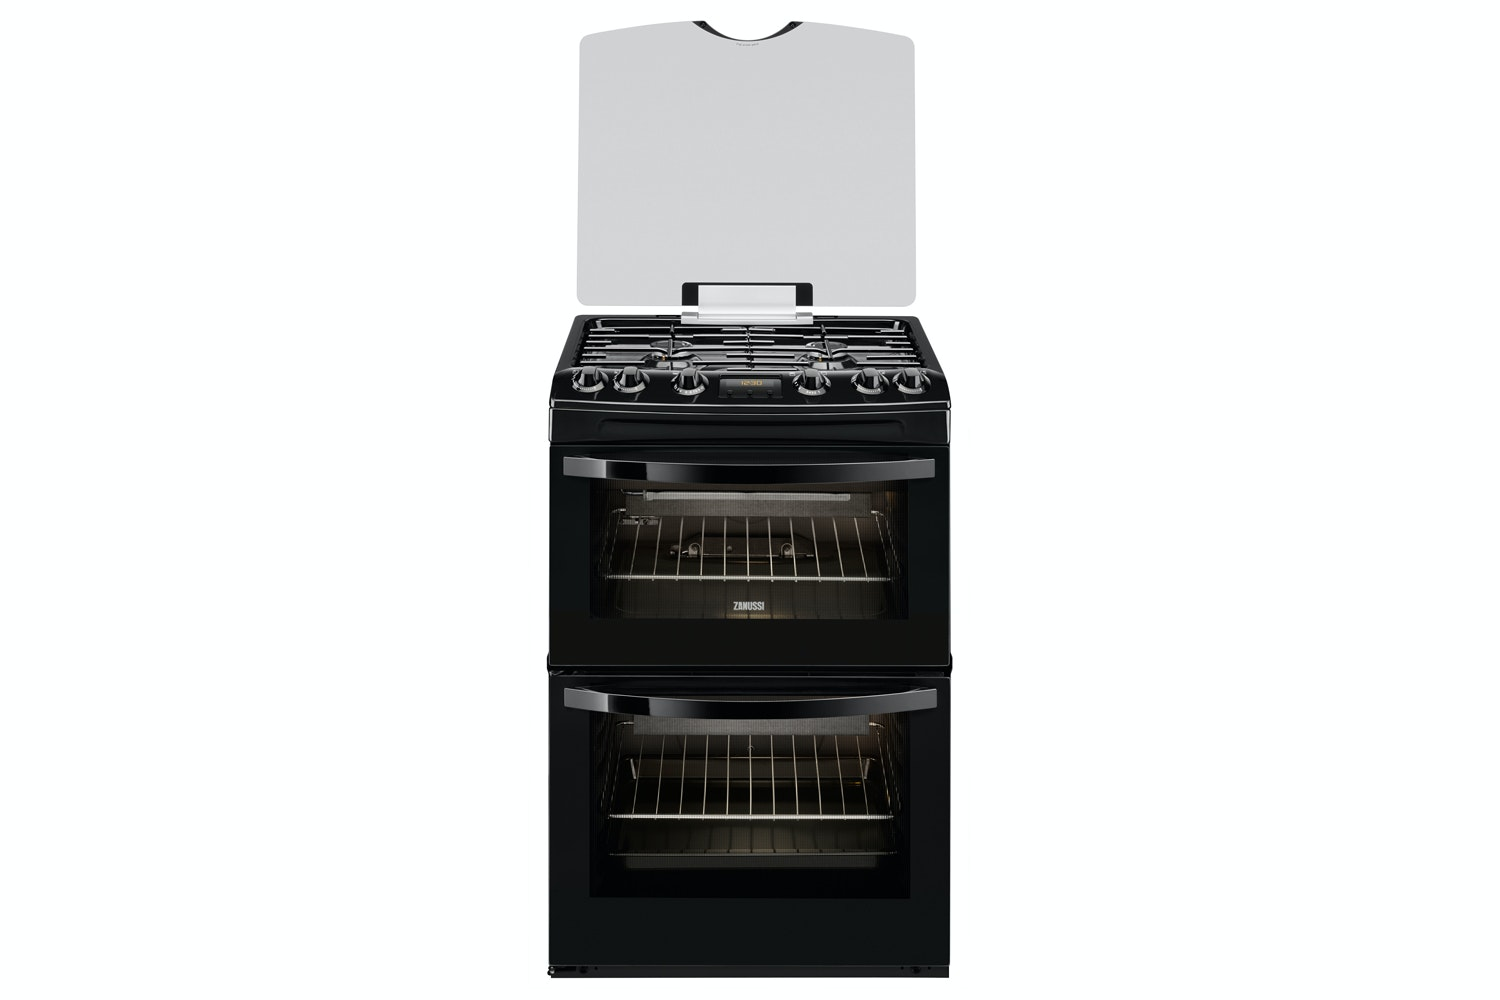 Zanussi 60cm Gas Cooker | ZCG63200BA | Black